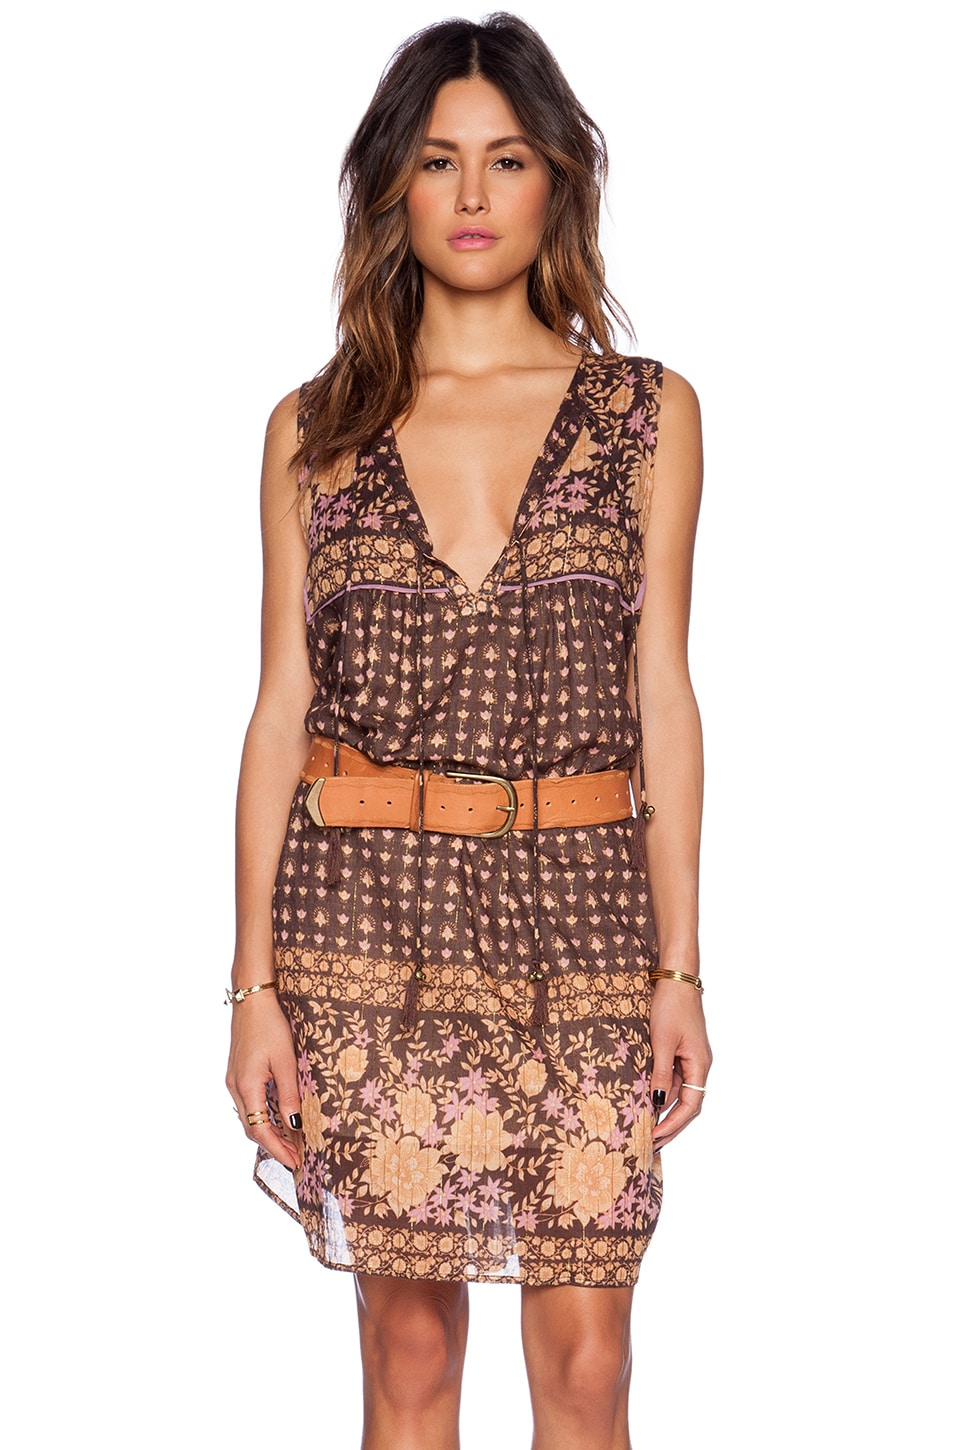 Spell & The Gypsy Collective Desert Rose Dress in Raven